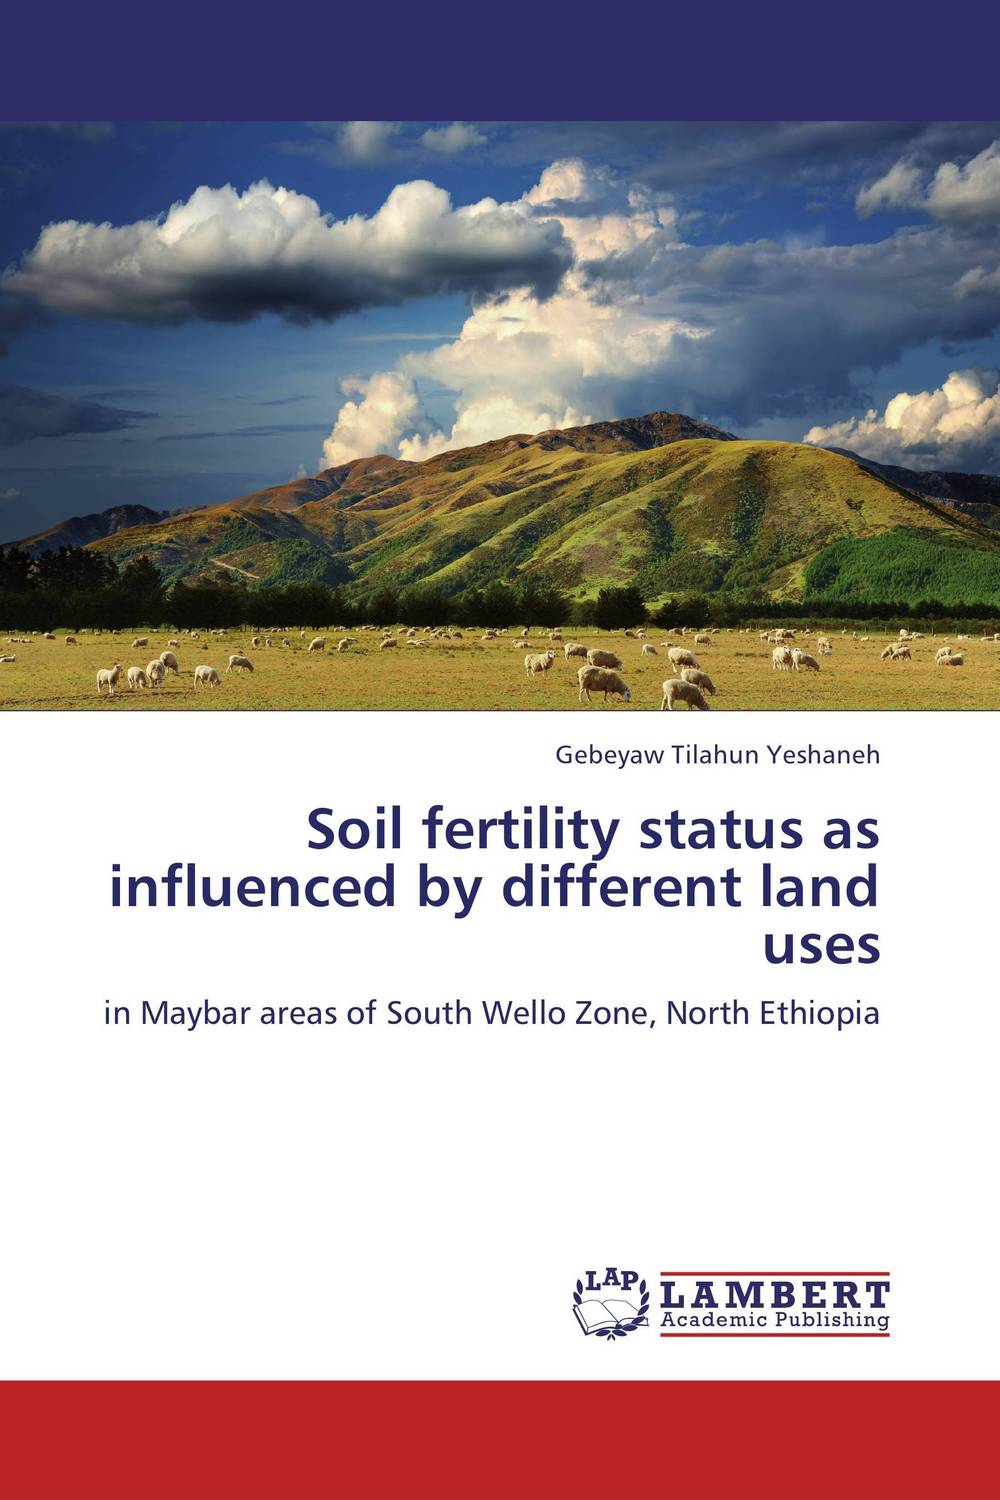 Soil fertility status as influenced by different land uses sarah cheroben and cheroben integrated soil fertility management and marketing of farm produce